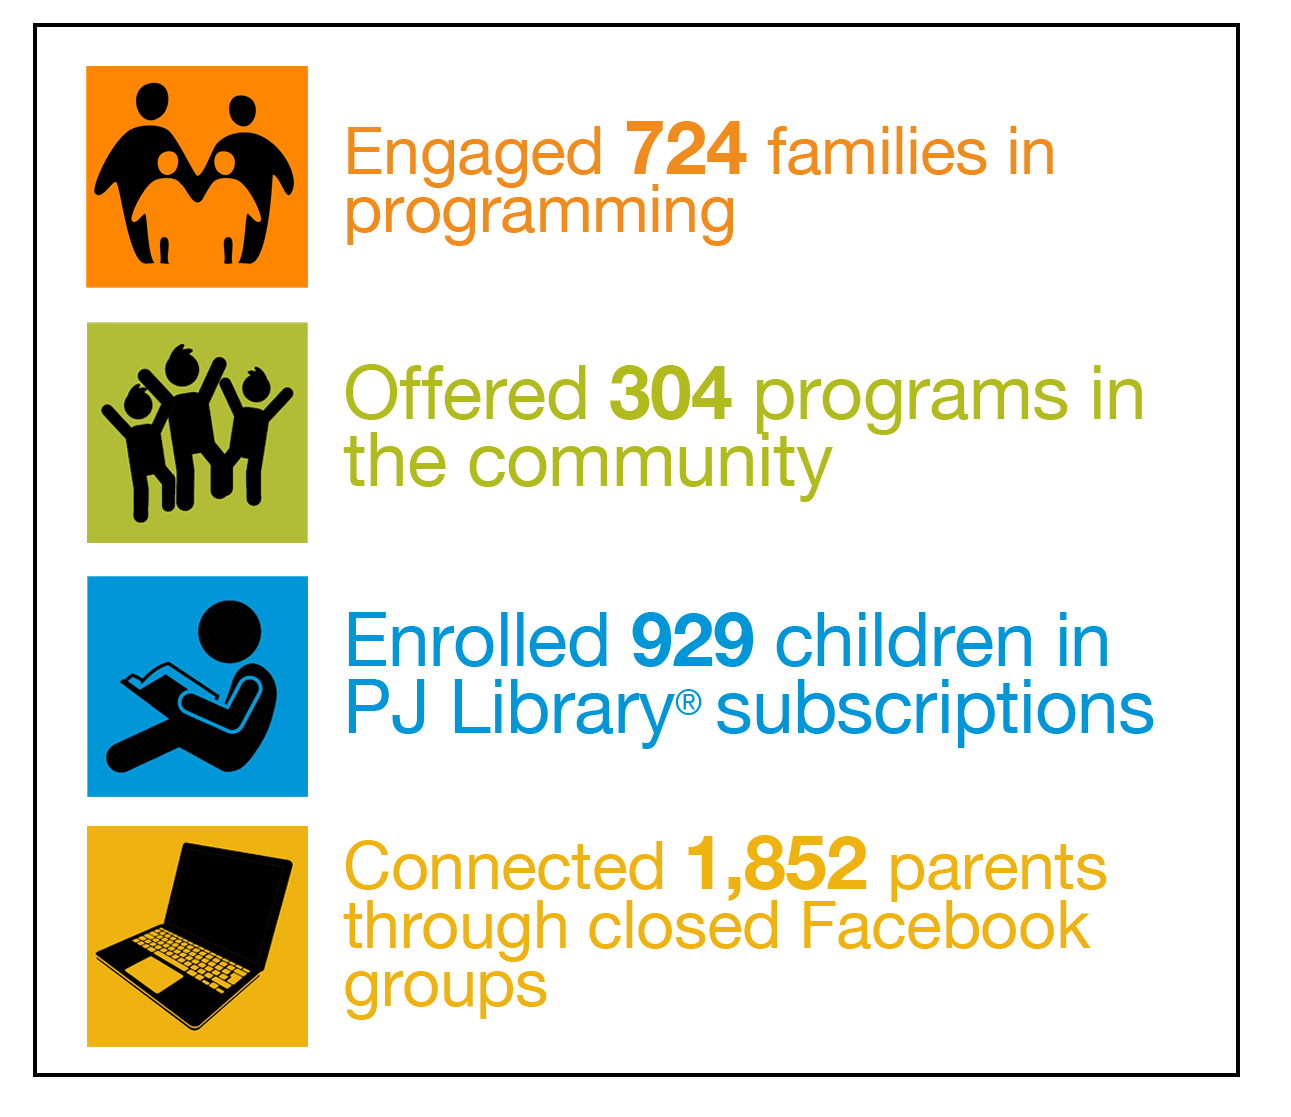 An image with logos next to each section. They include: an orange logo of a  family standing next to each other with the words: engaged 724 families in programming, a green logo of people playing with the words: offered 304 programs in the community, a blue logo of a person reading with the words: enrolled 929 children in PJ Library subscriptions and a yellow logo of a computer with the words: connected 1,852 parents through closed Facebook groups.